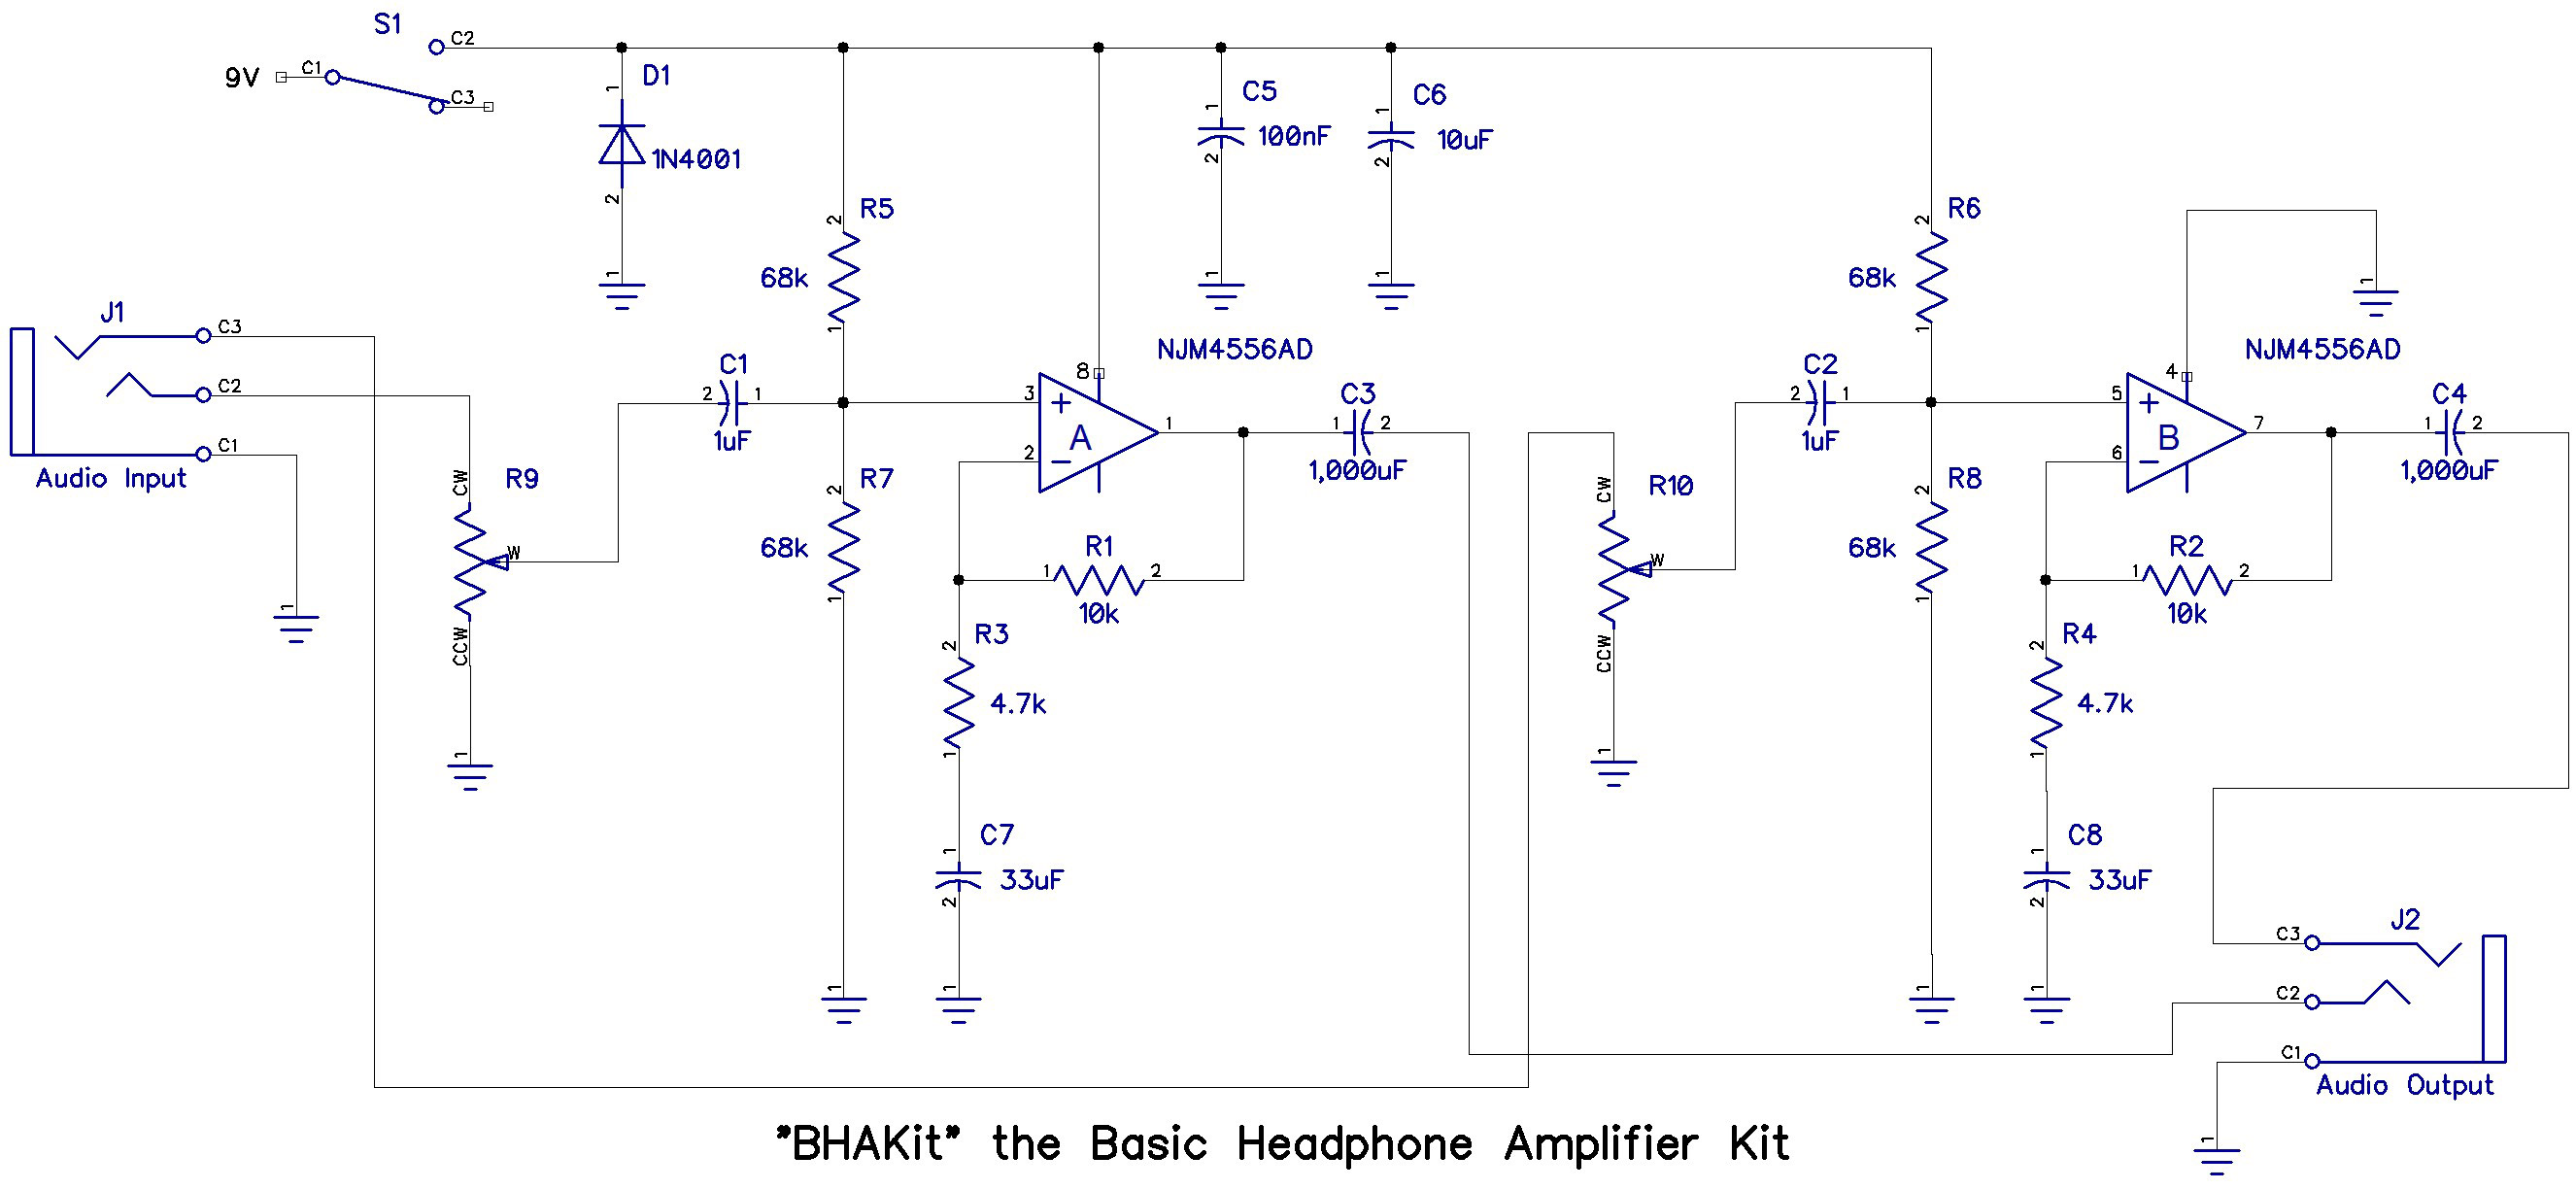 Basic Headphone Amplifier Kit Simple Electronic Circuit Design Projects Click To Enlarge